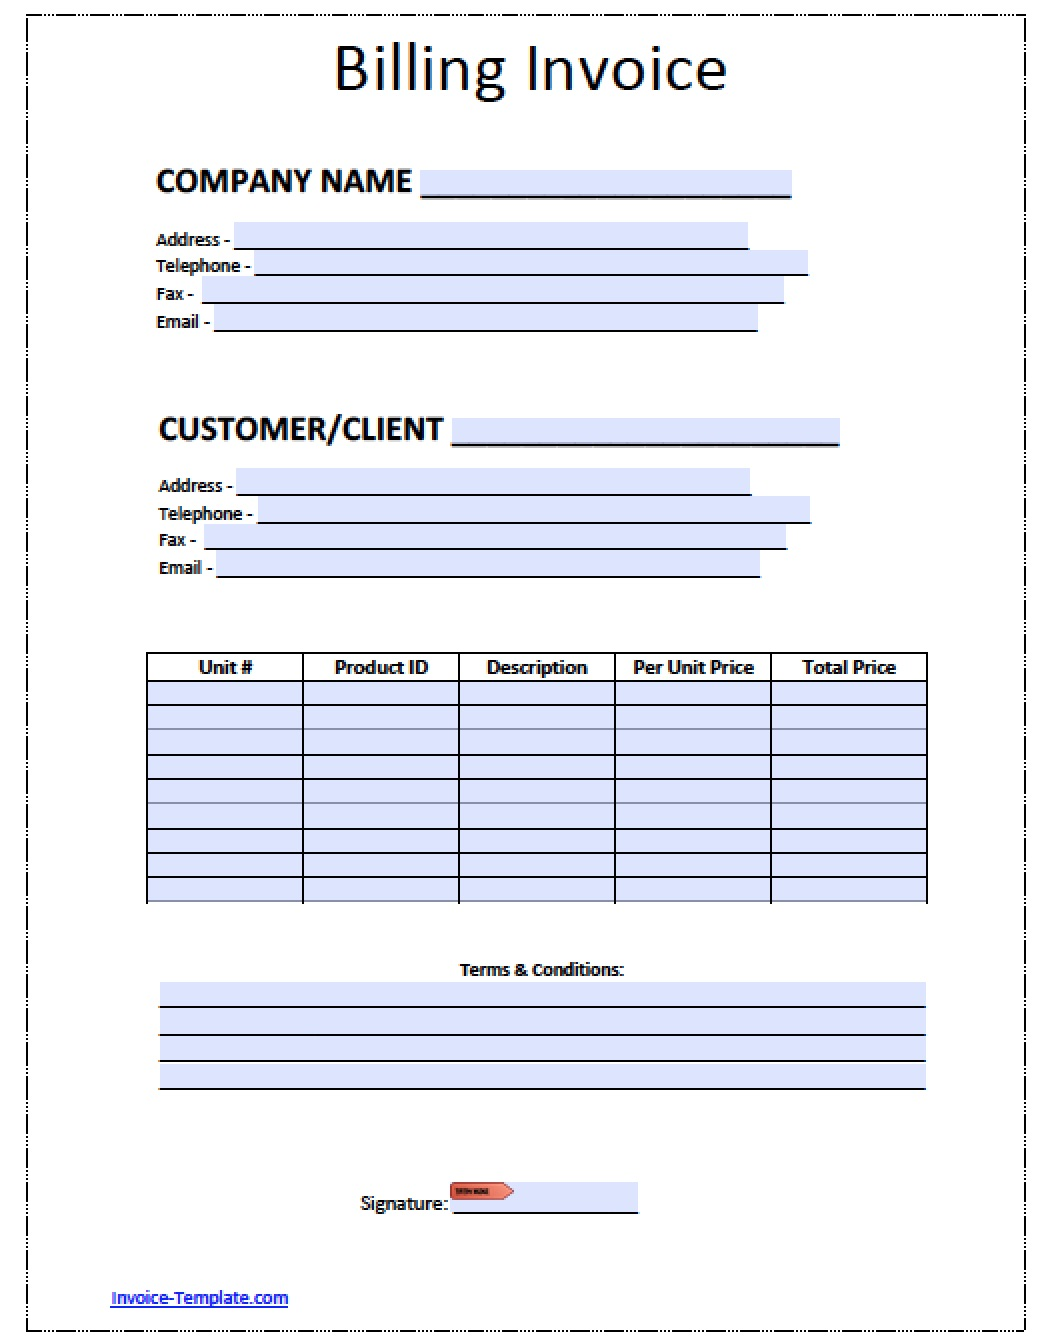 Free Blank Invoice Templates In PDF Word Excel - Invoice template on excel buy online pickup in store same day